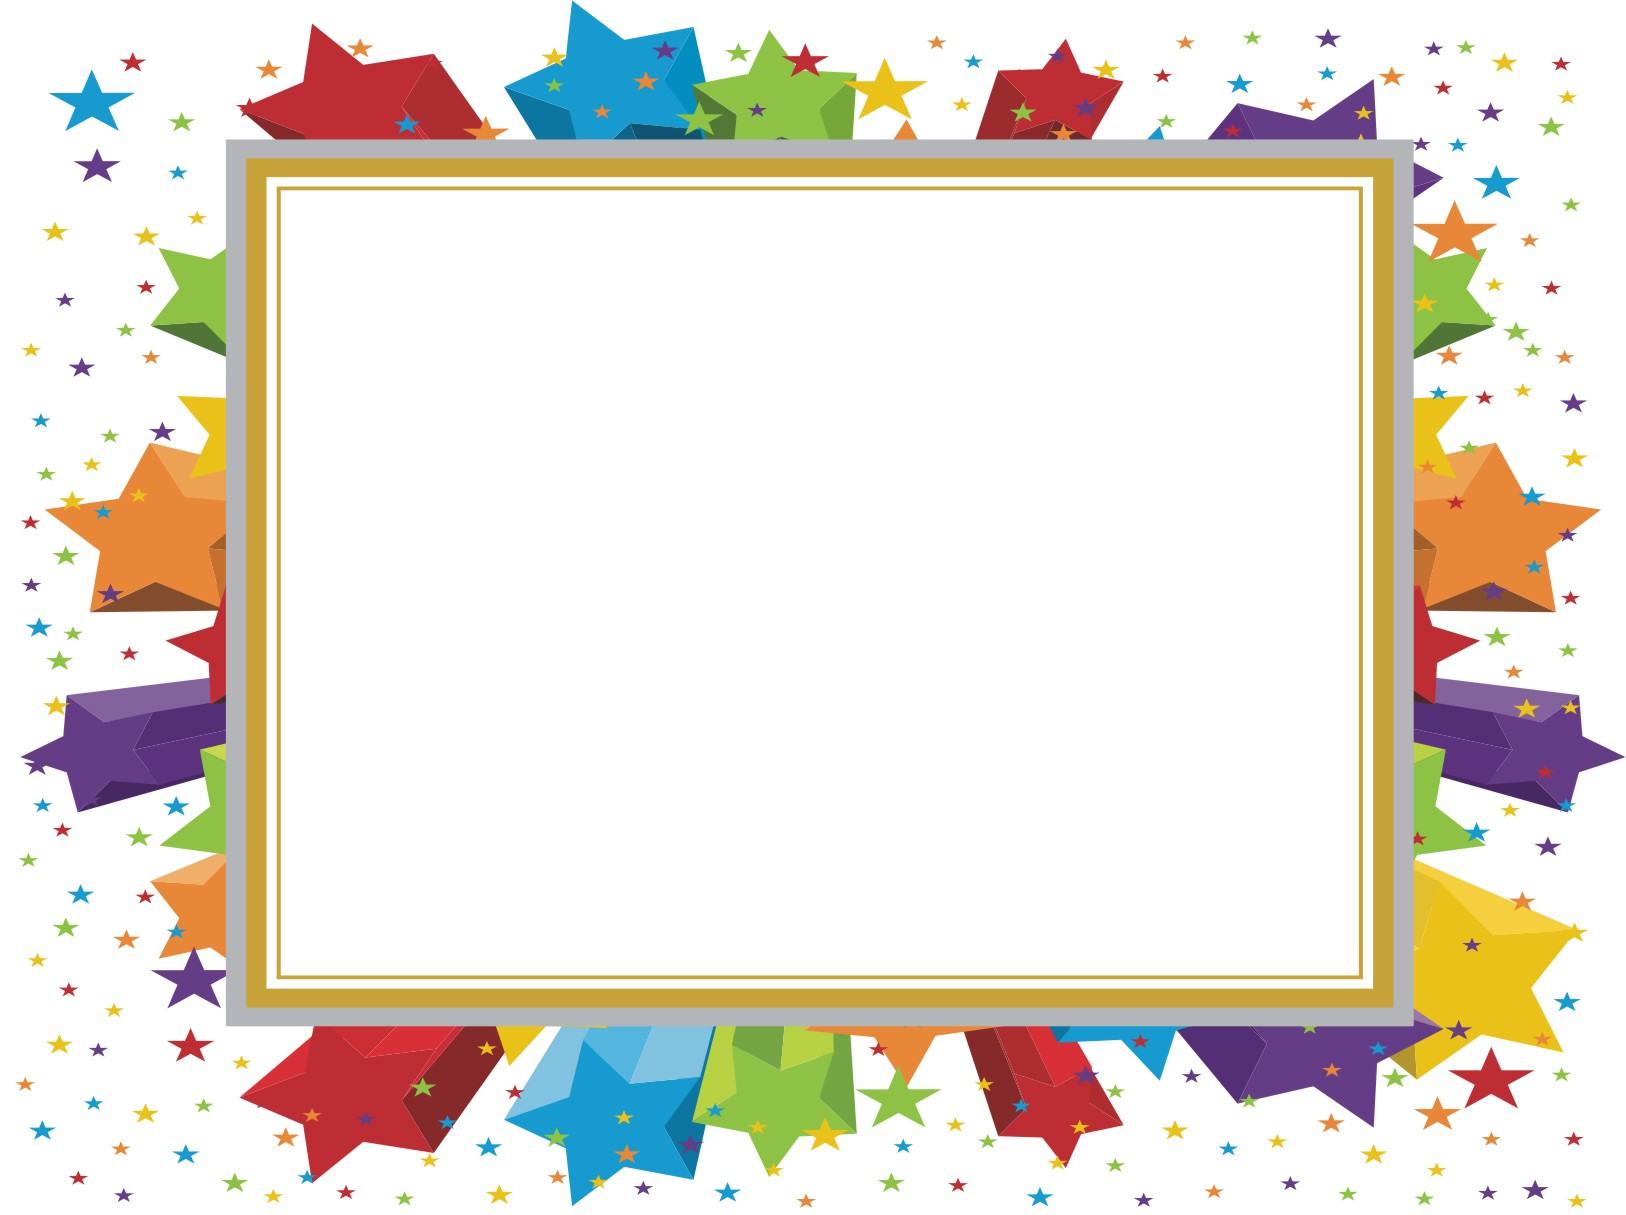 Celebration templates happy events celebration ppt backgrounds happy celebration templates happy events celebration ppt backgrounds happy events maxwellsz